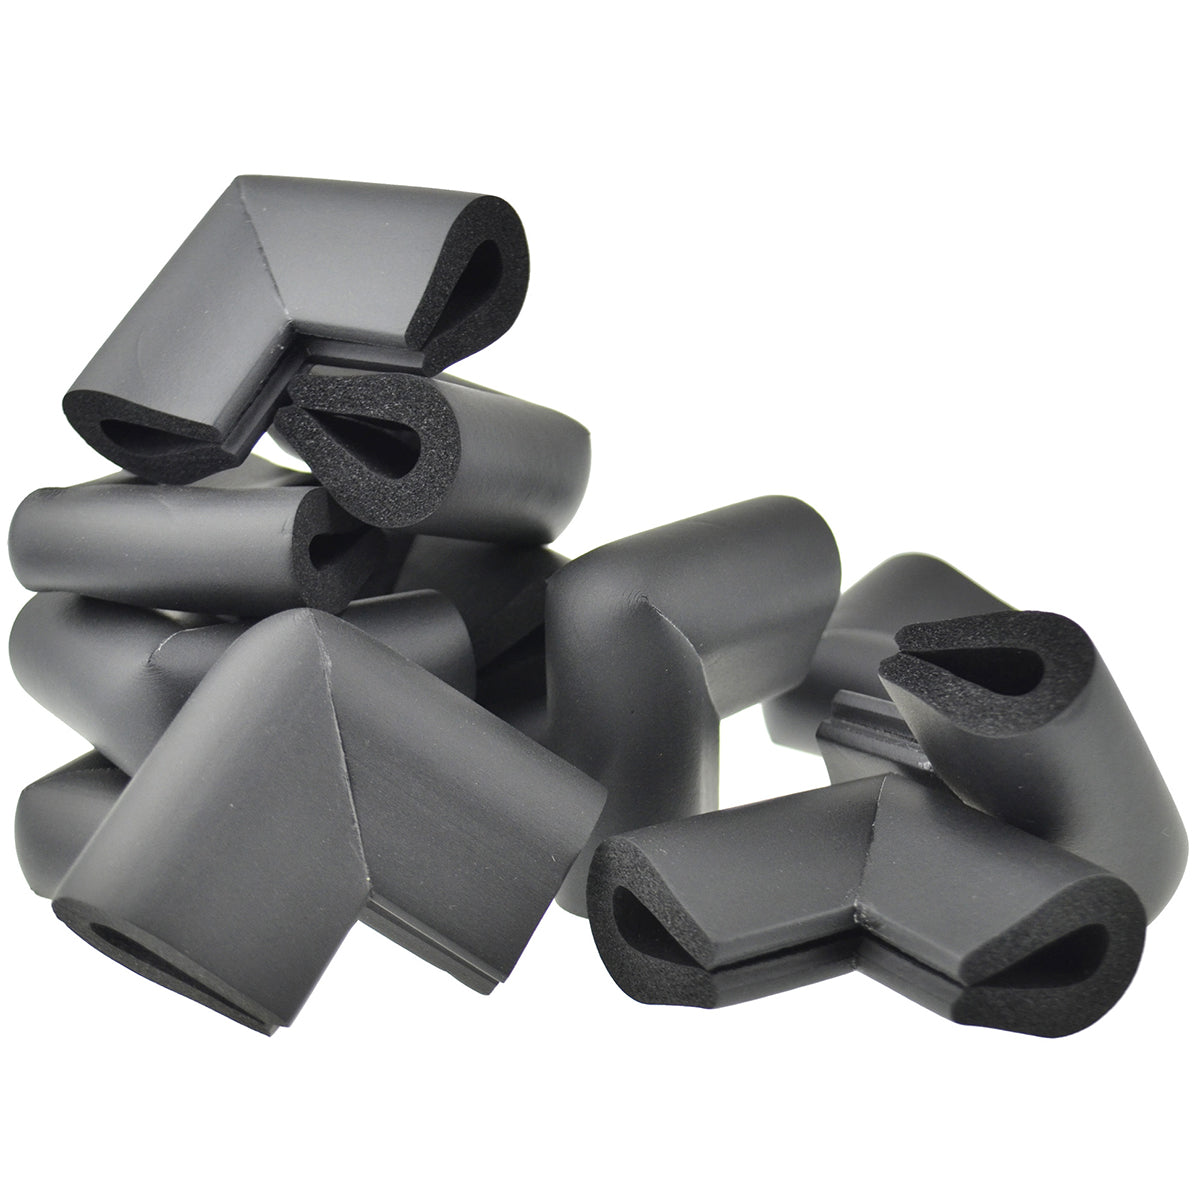 12 pieces black u-shaped foam corner protectors show with a white background.